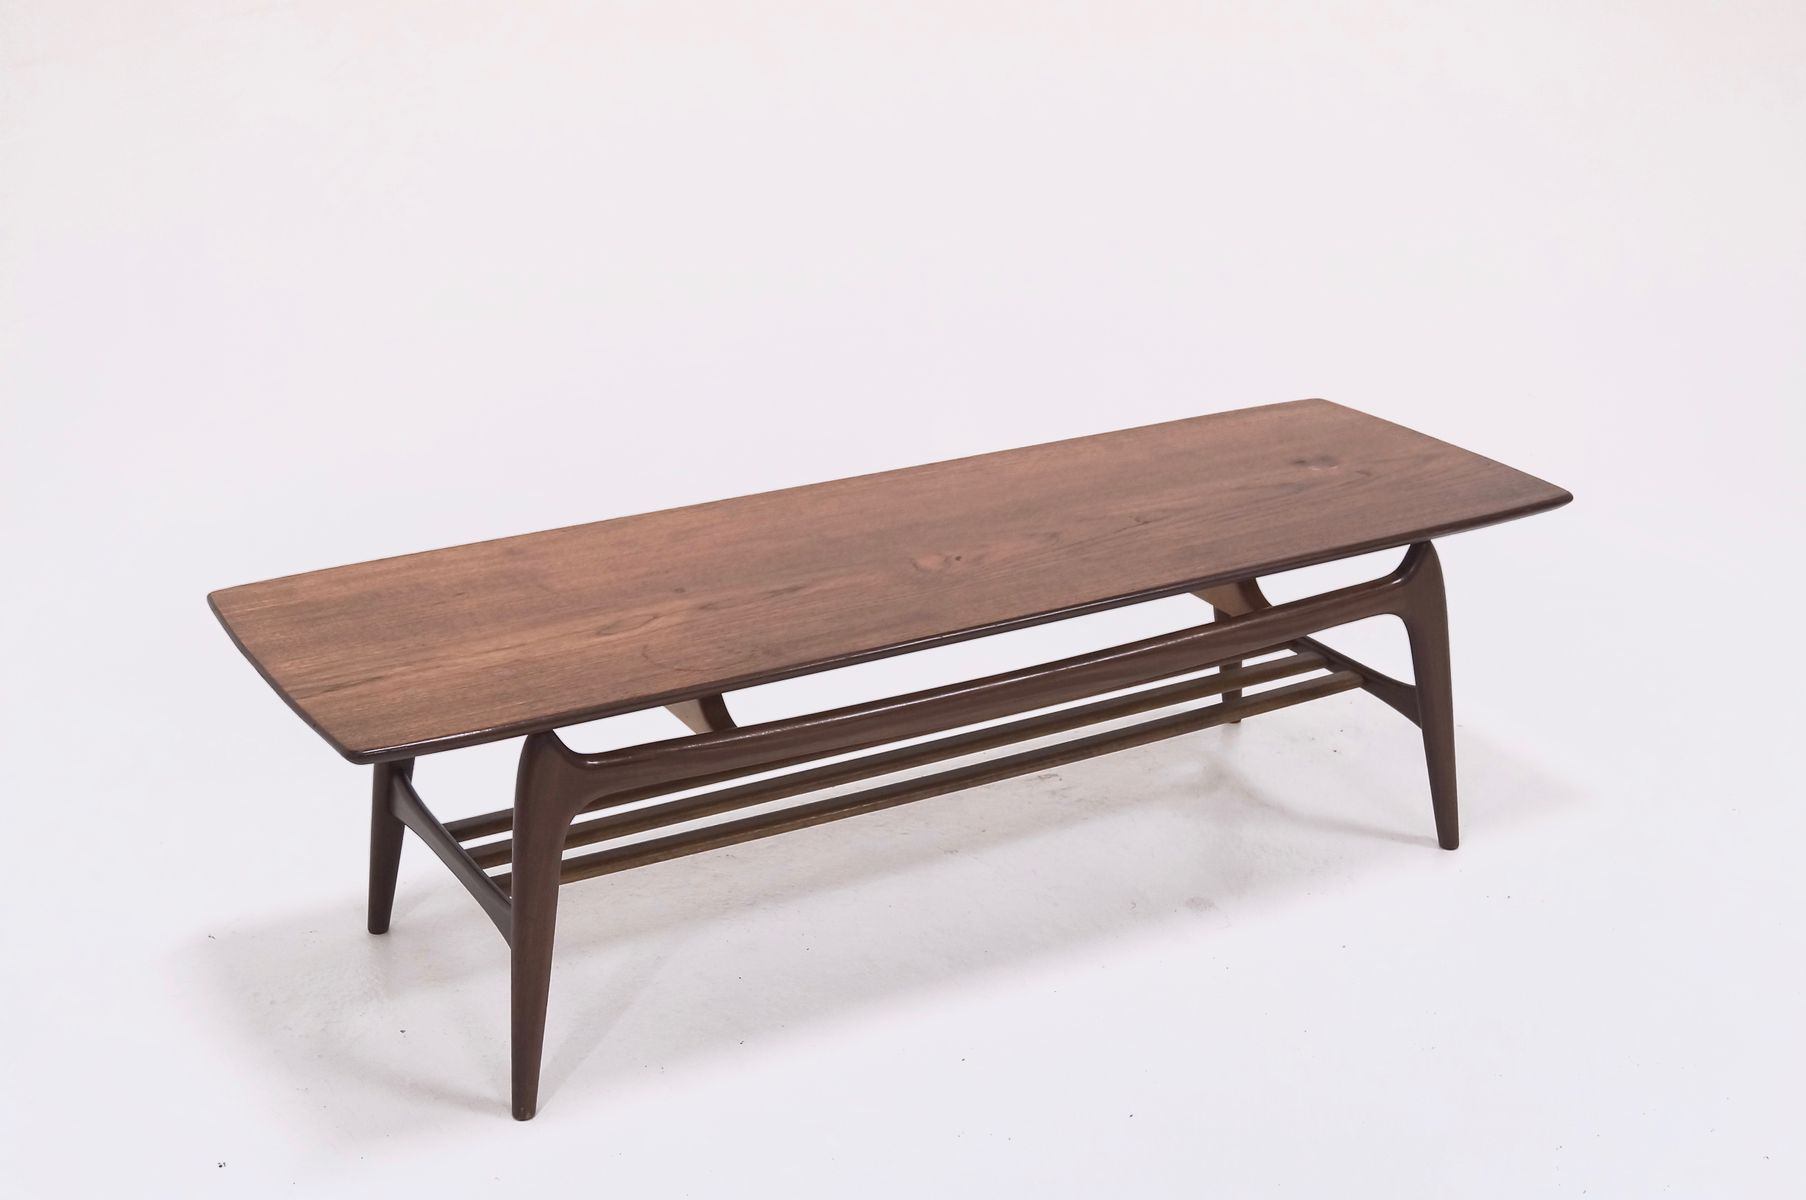 Vintage Teak Coffee Table By Louis Van Teeffelen For W B For Sale At Pamono